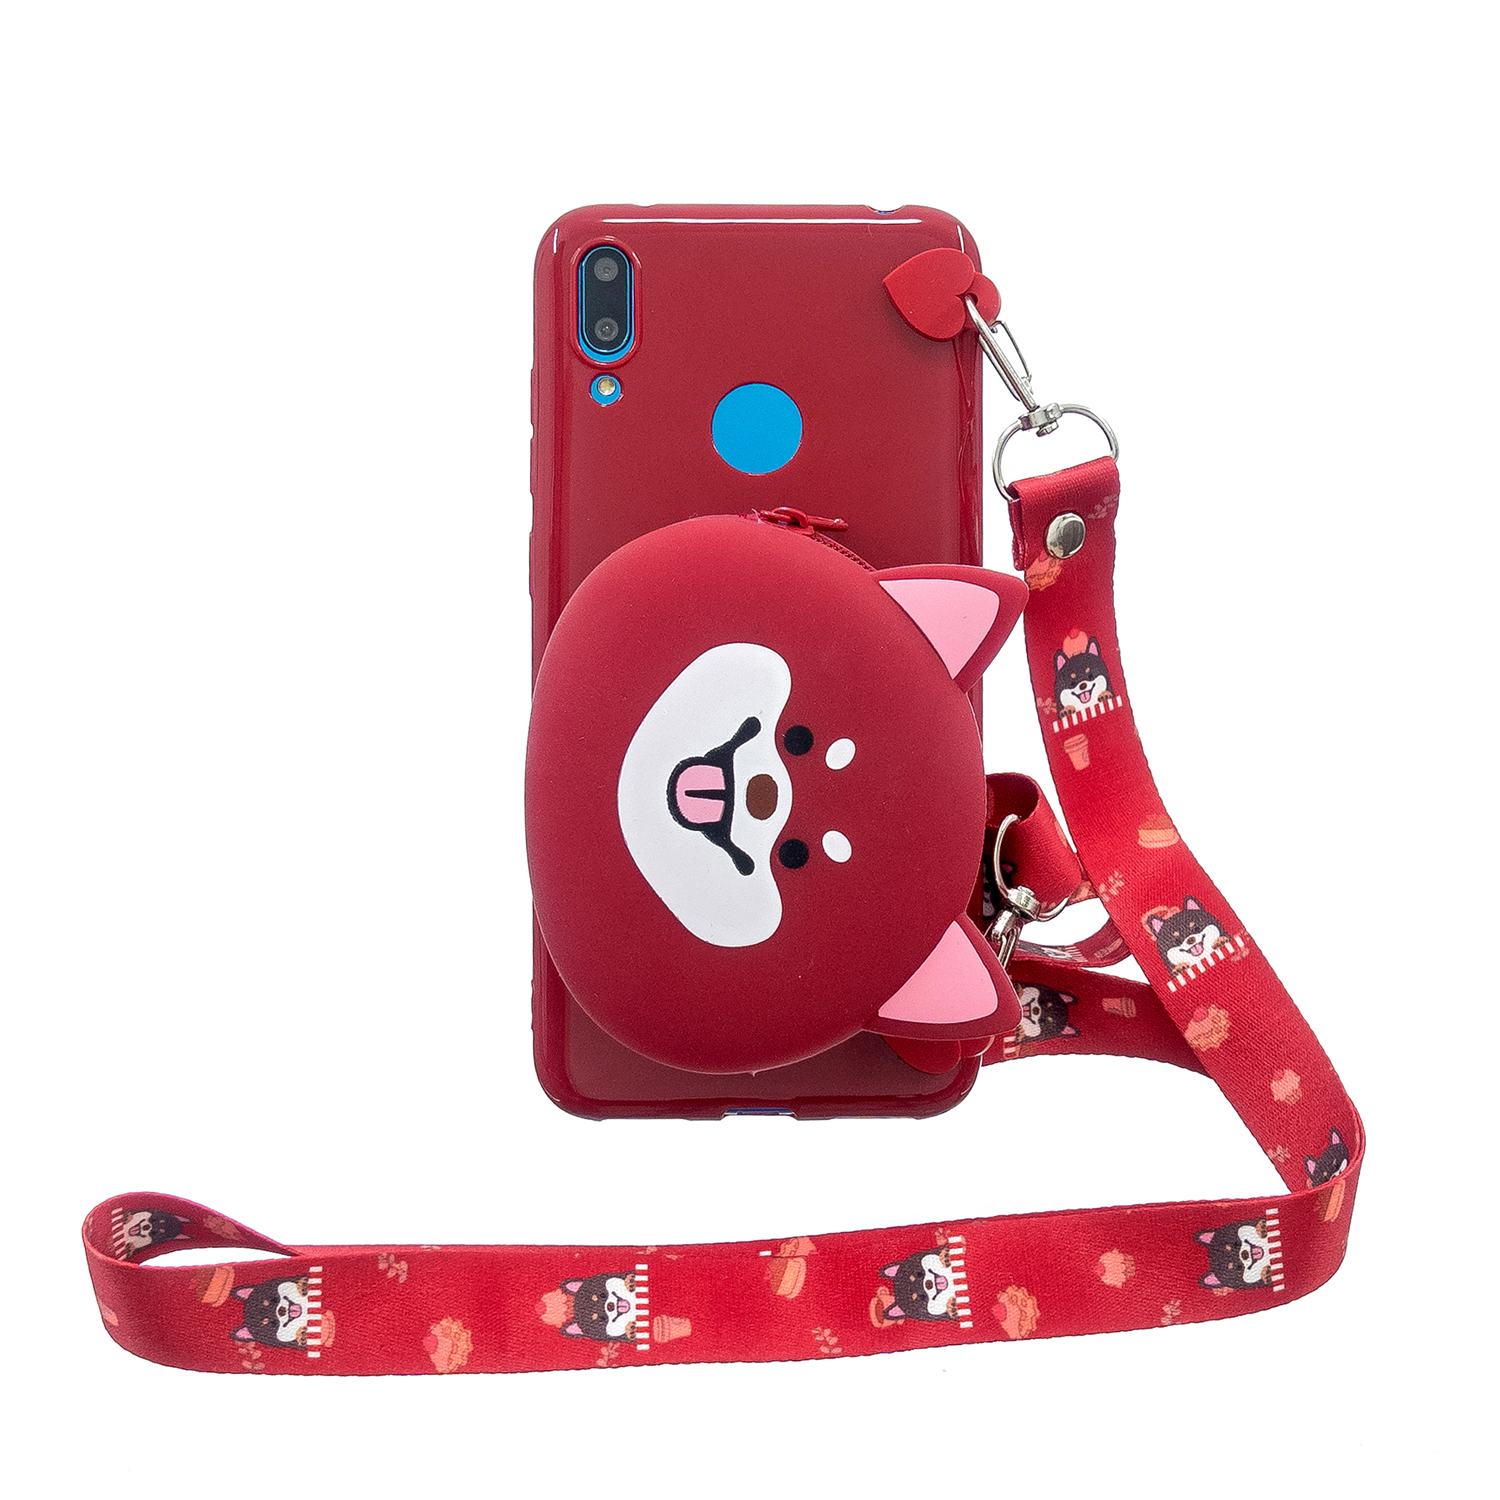 For HUAWEI Y6/Y7 Prime 2019 Cellphone Case Mobile Phone Shell Shockproof TPU Cover with Cartoon Cat Pig Panda Coin Purse Lovely Shoulder Starp  Red